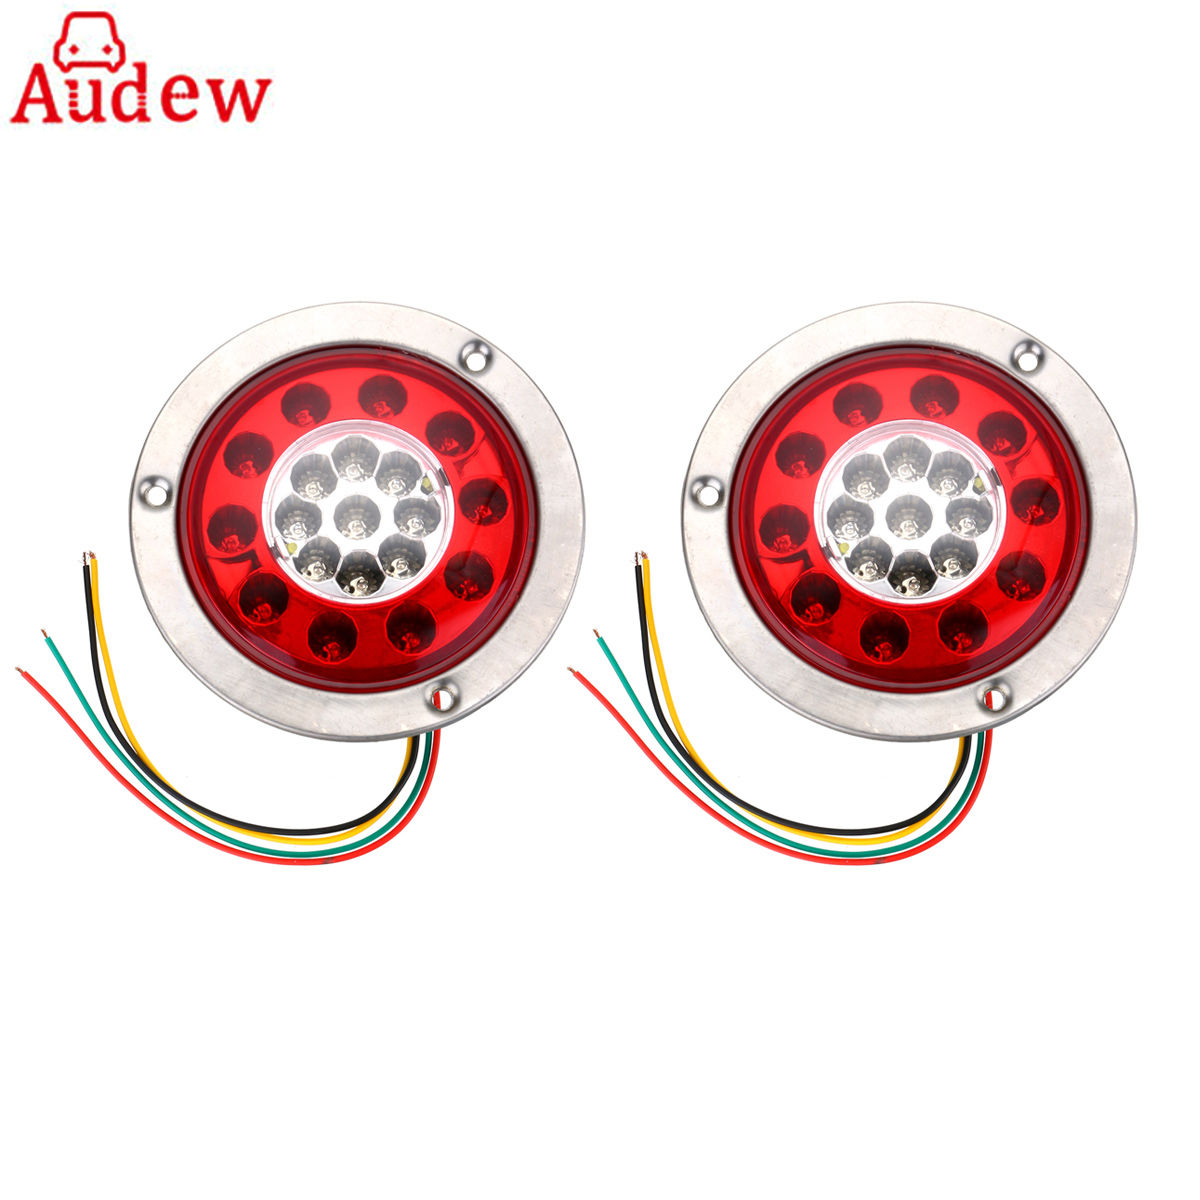 2Pcs Round Steel Ring Car Side LED Lamp Light 19 LED Truck Trailer Lorry Brake Stop Turn Tail Light Stainless eonstime 2pcs 12v 16 led red white truck trailer boat stop turn tail light reverse light lamp waterproof